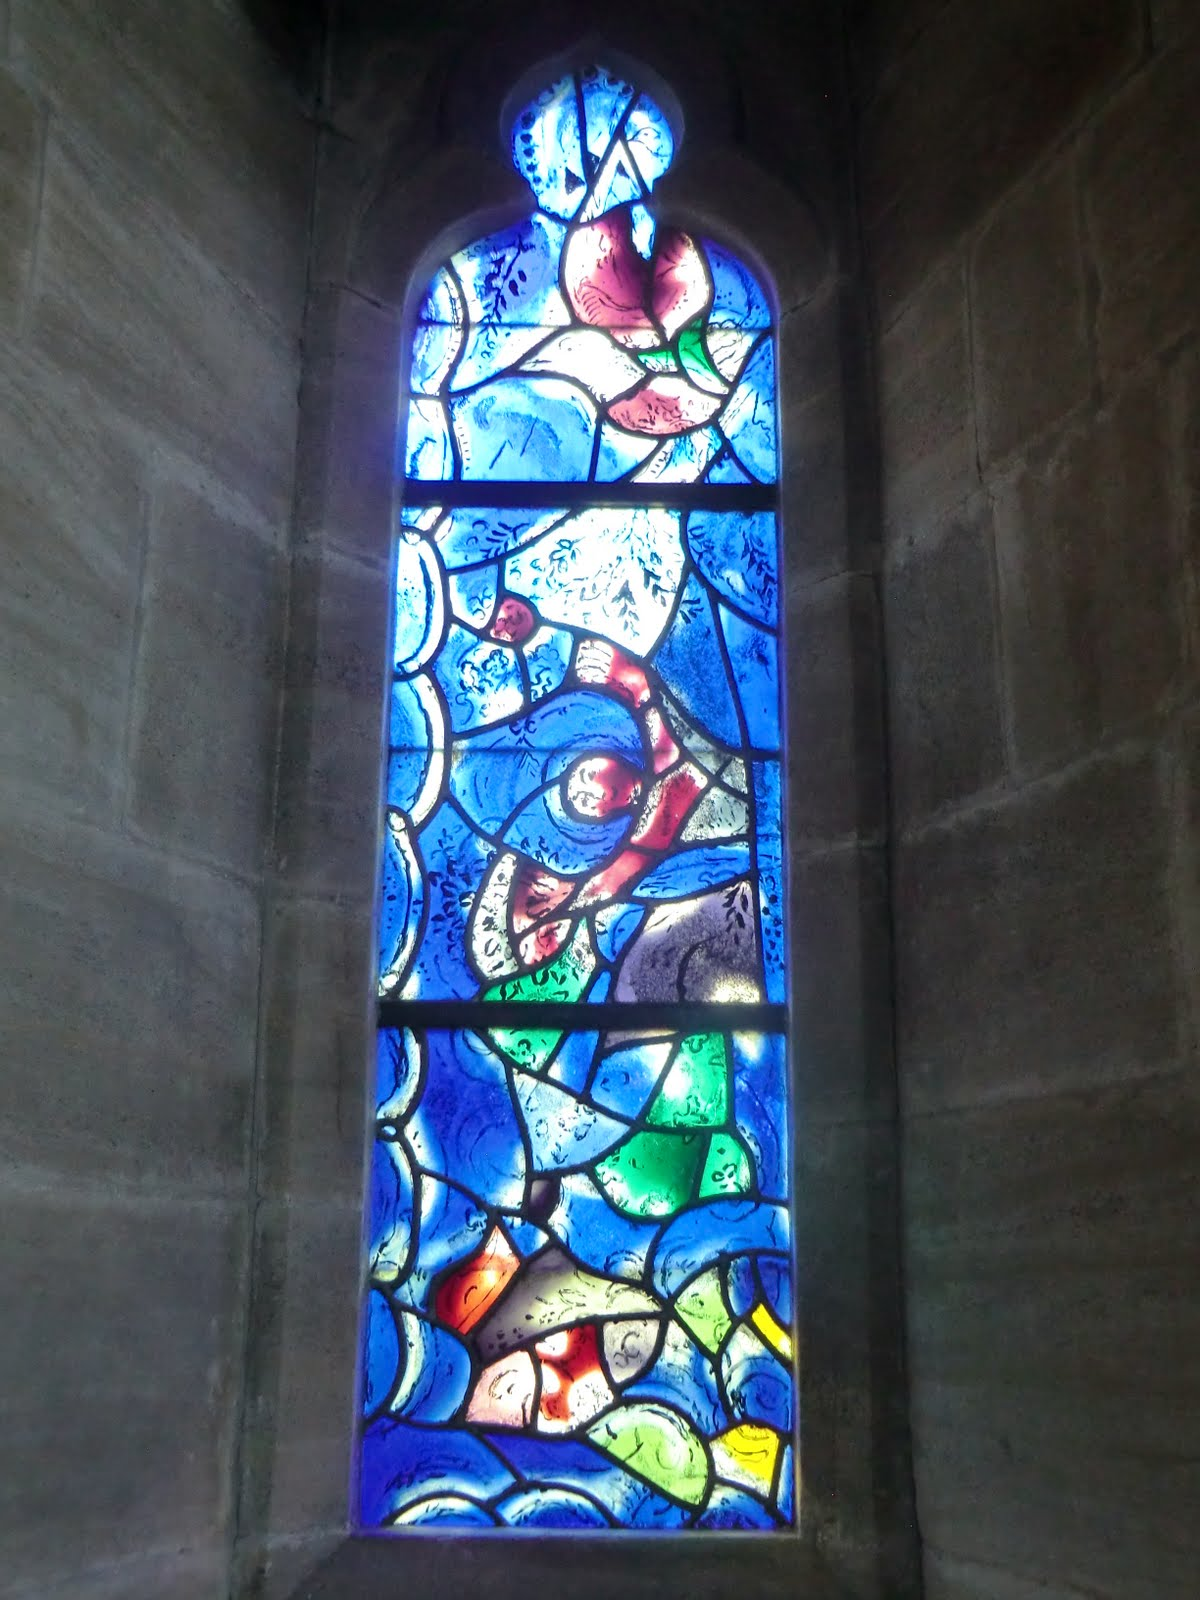 CIMG1565 Chagall window #7, All Saints church